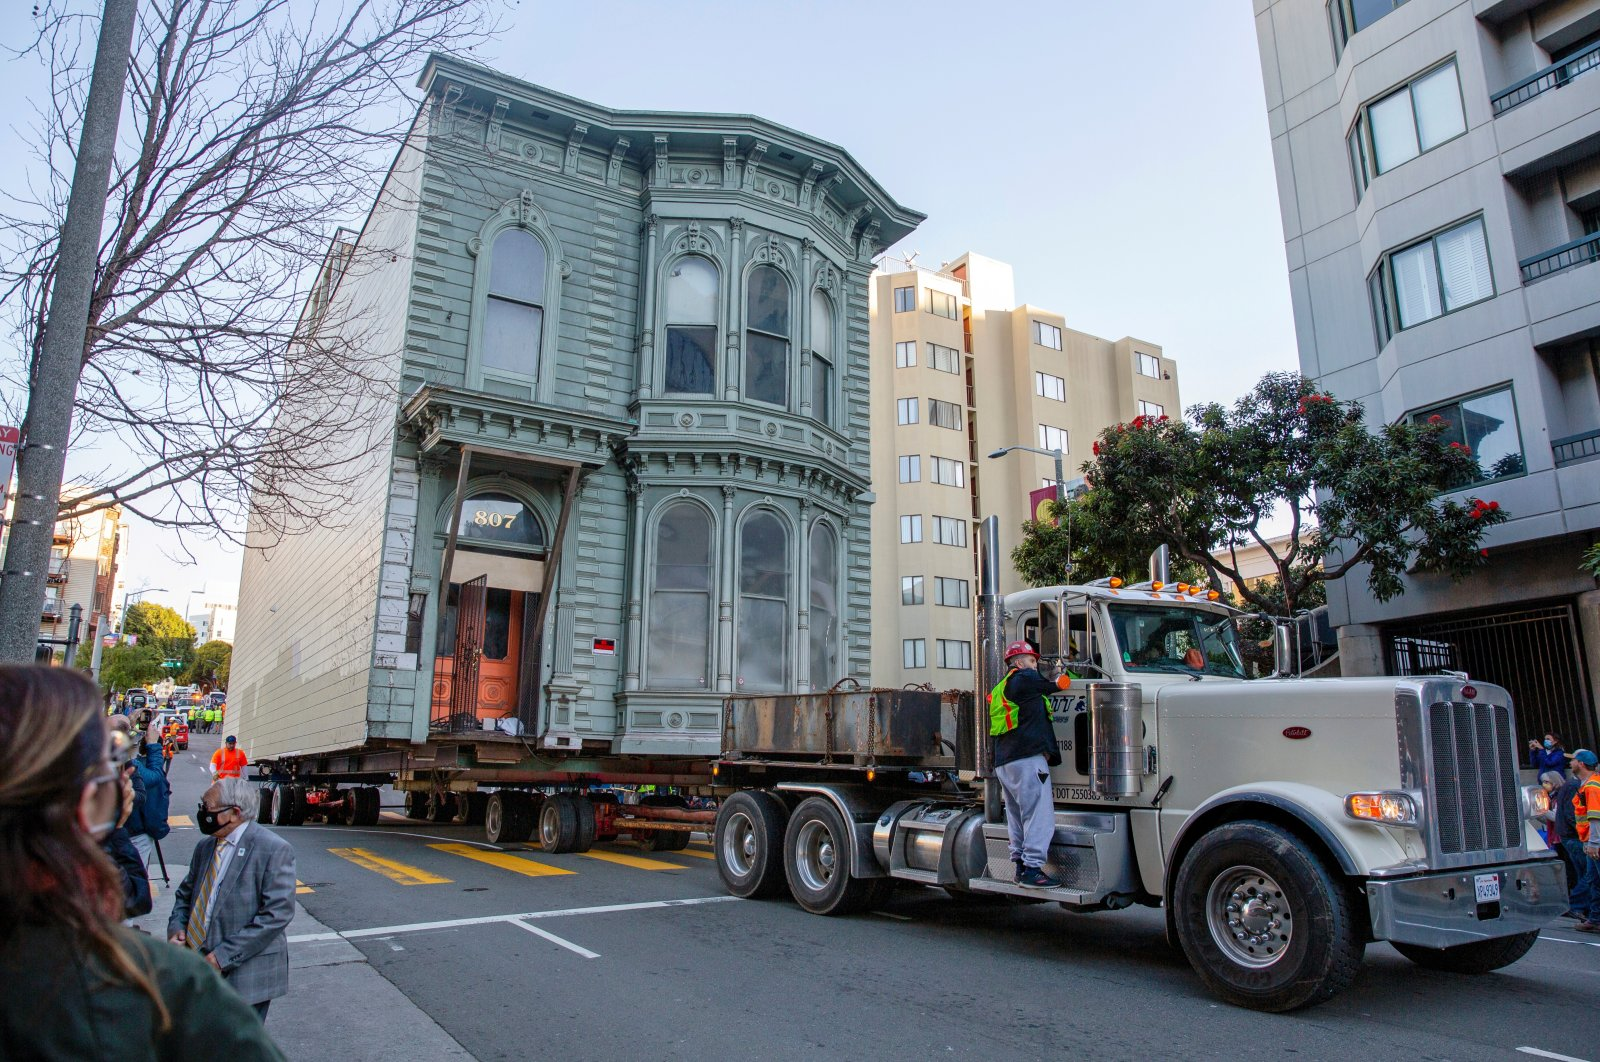 A Huge 139 Year Old Victorian Home Was Moved in San Francisco | Moss and Fog